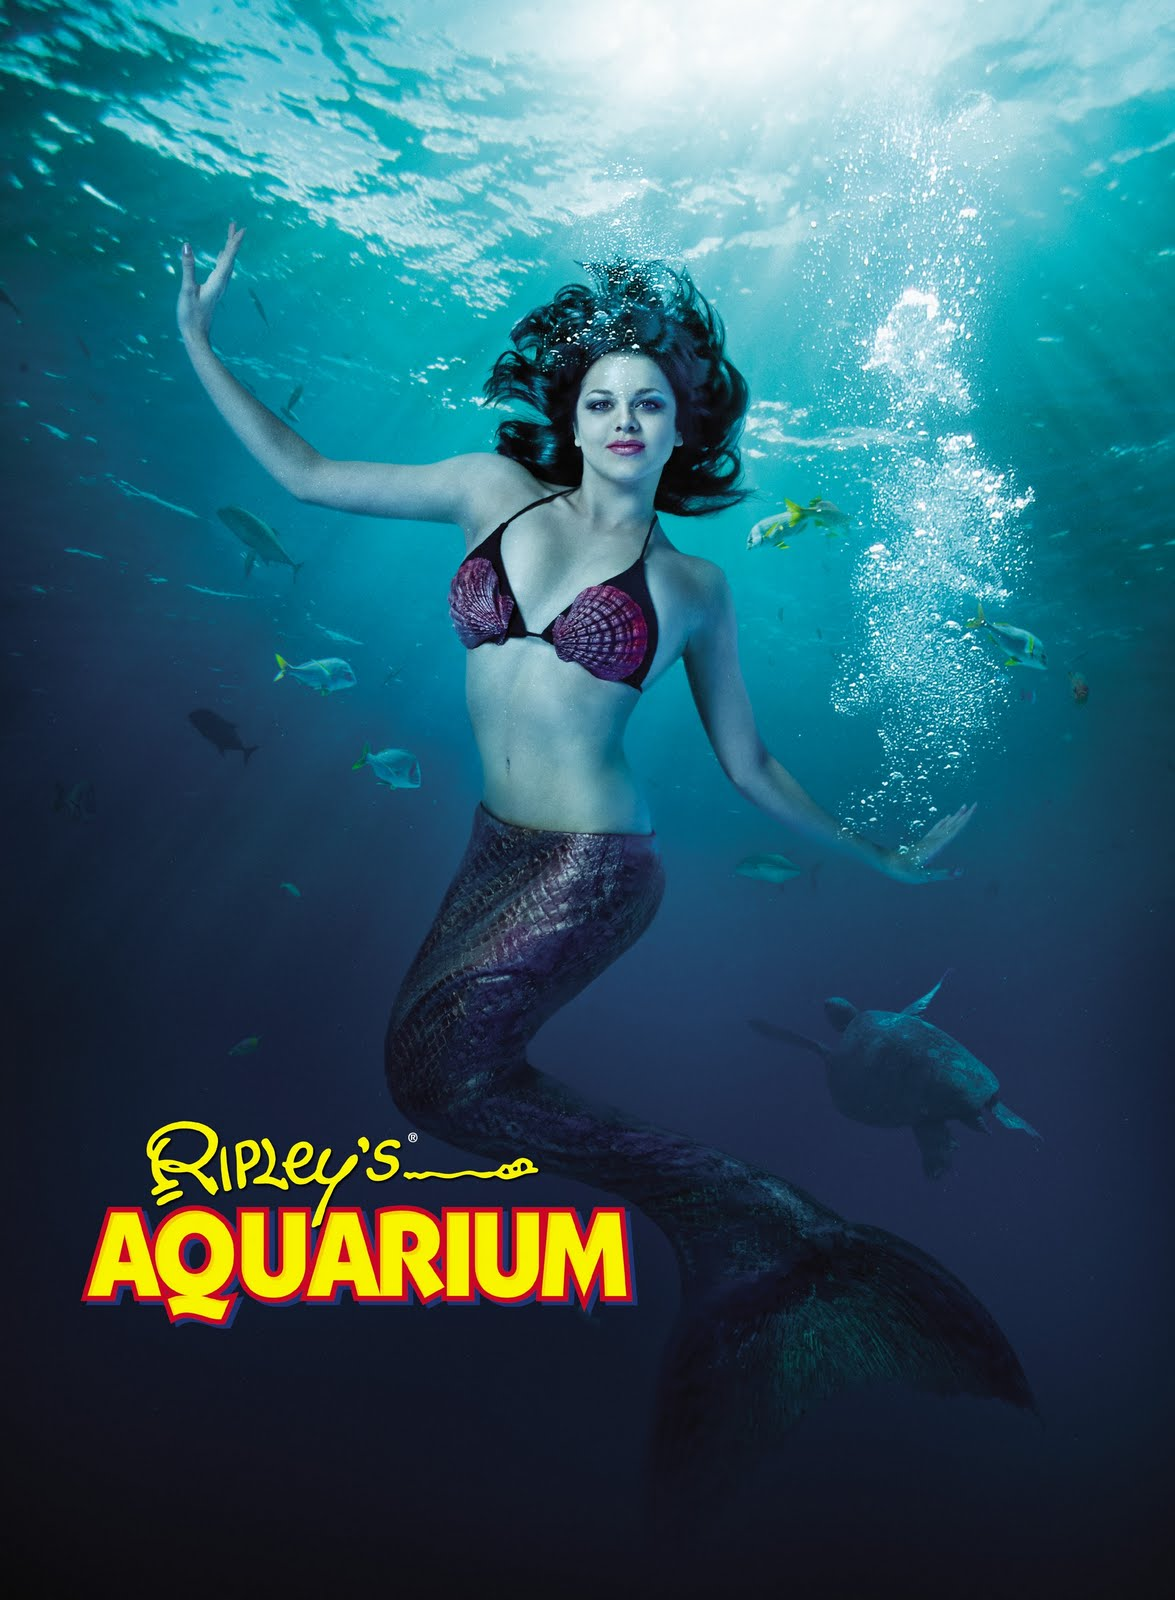 Ripley S Aquarium In Myrtle Beach Is Presenting Some Of The Most Magical Creatures World This Summer Mermaids Mermaid Shows Are